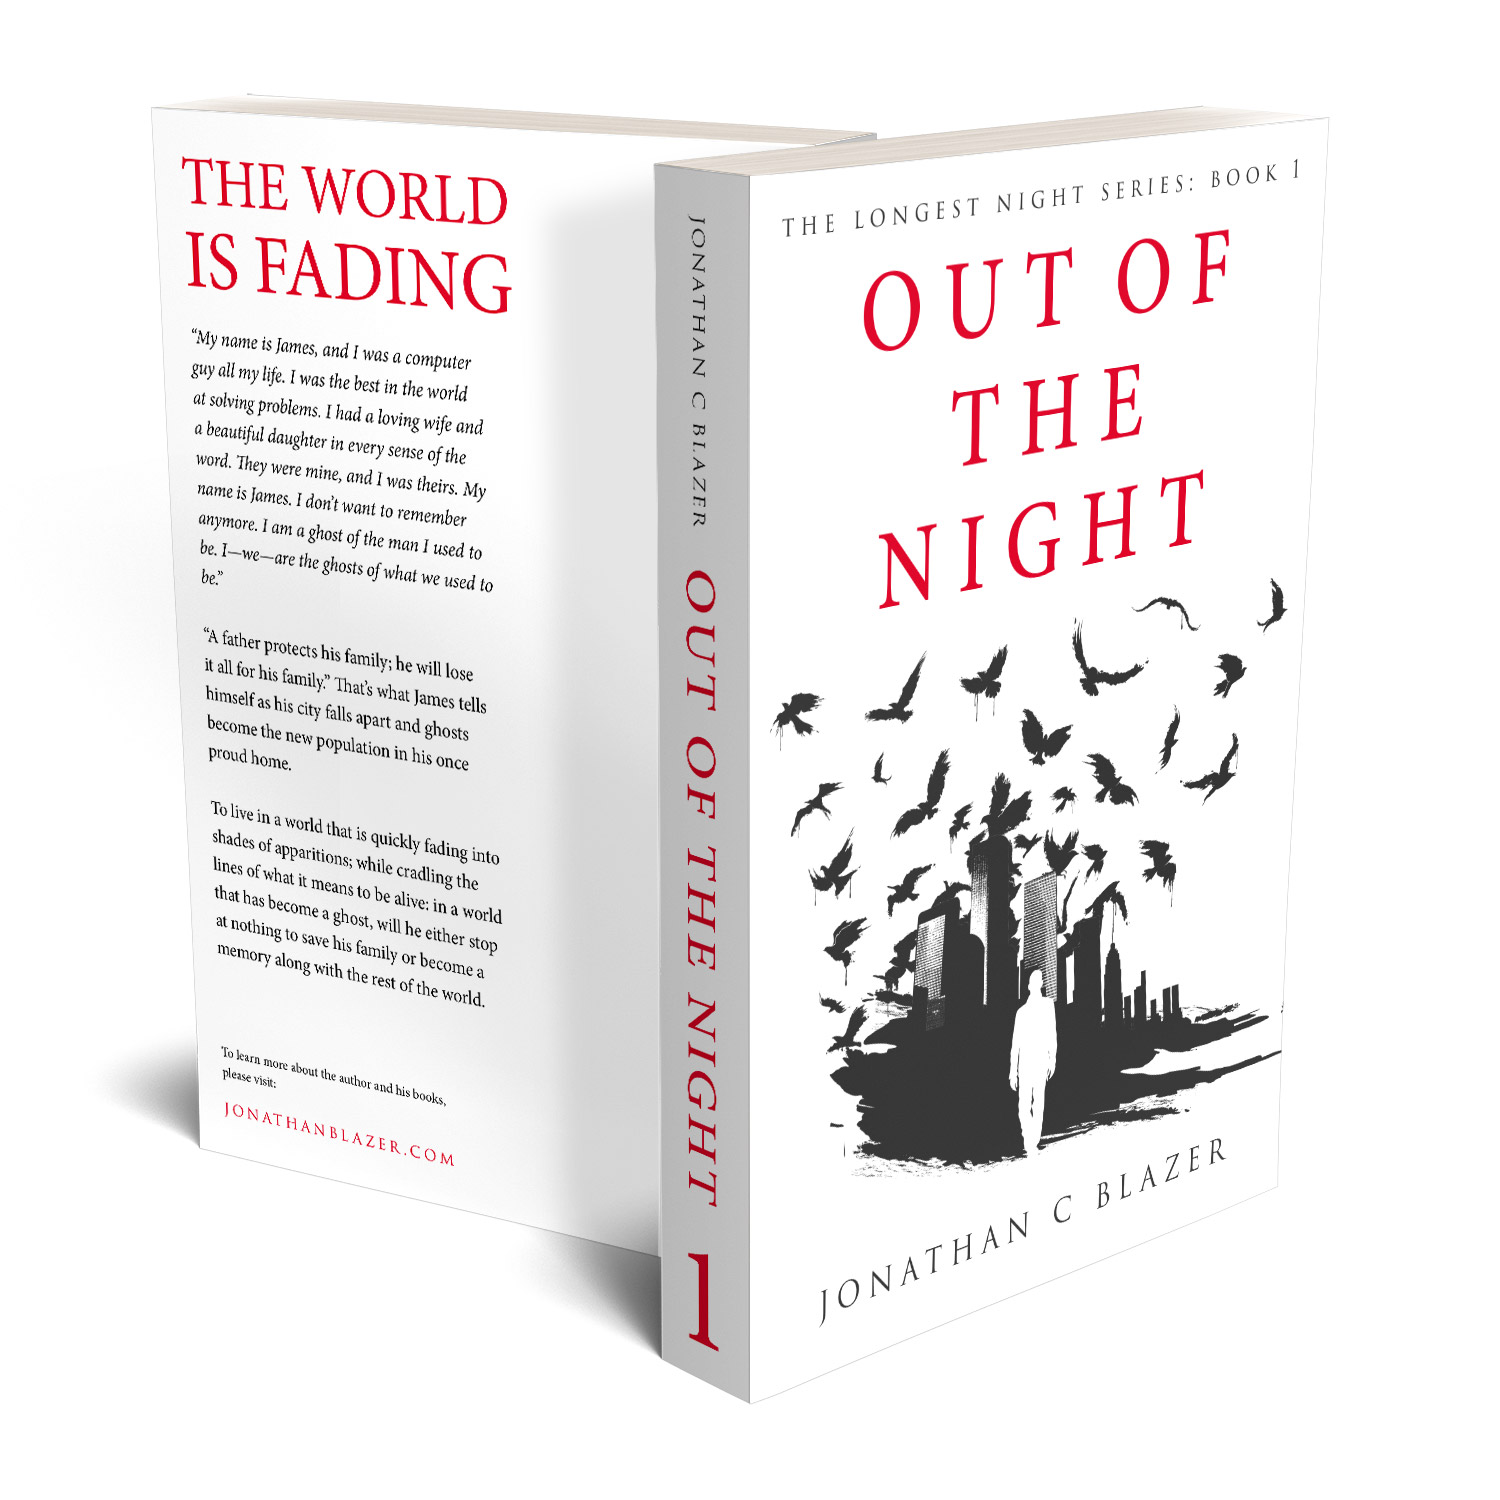 'Out Of The Night' is a highly evocative, wistful ghost story. The author is Jonathan C Blazer. The book cover was designed by Mark Thomas, of coverness.com. To find out more about my book design services, please visit www.coverness.com.